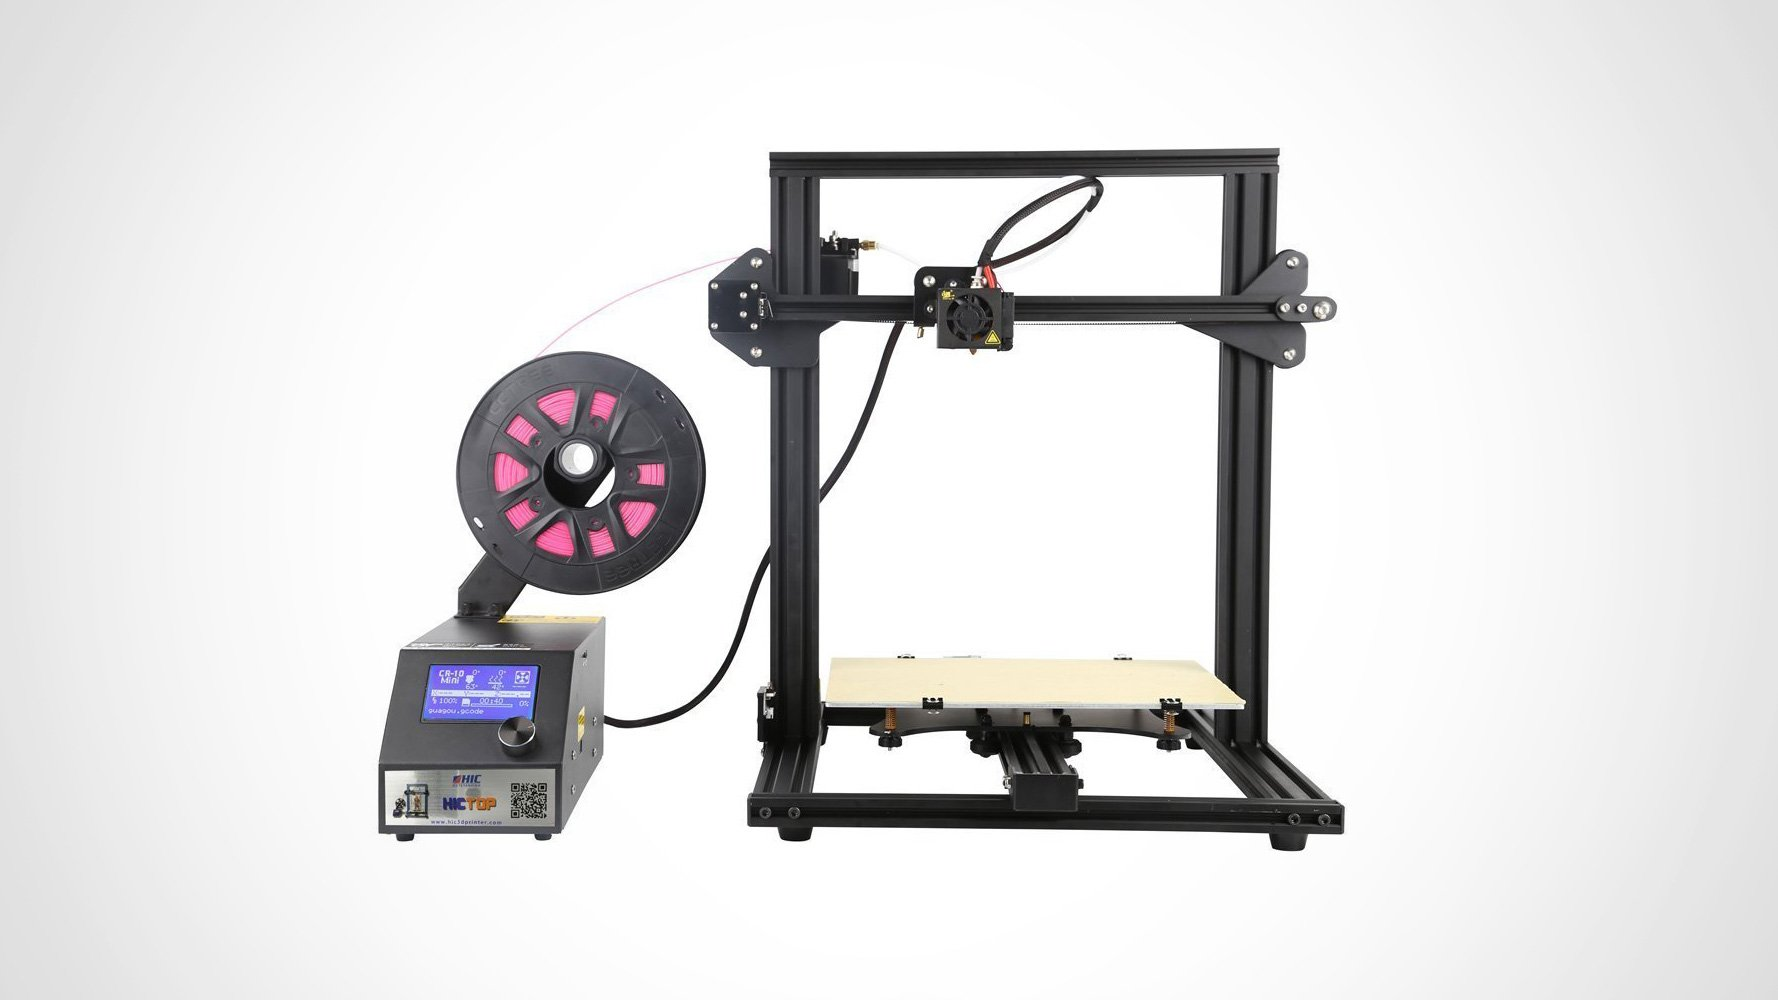 [DEAL *UPDATED*] Creality CR-10 Mini, $159.28 at AliExpress | All3DP